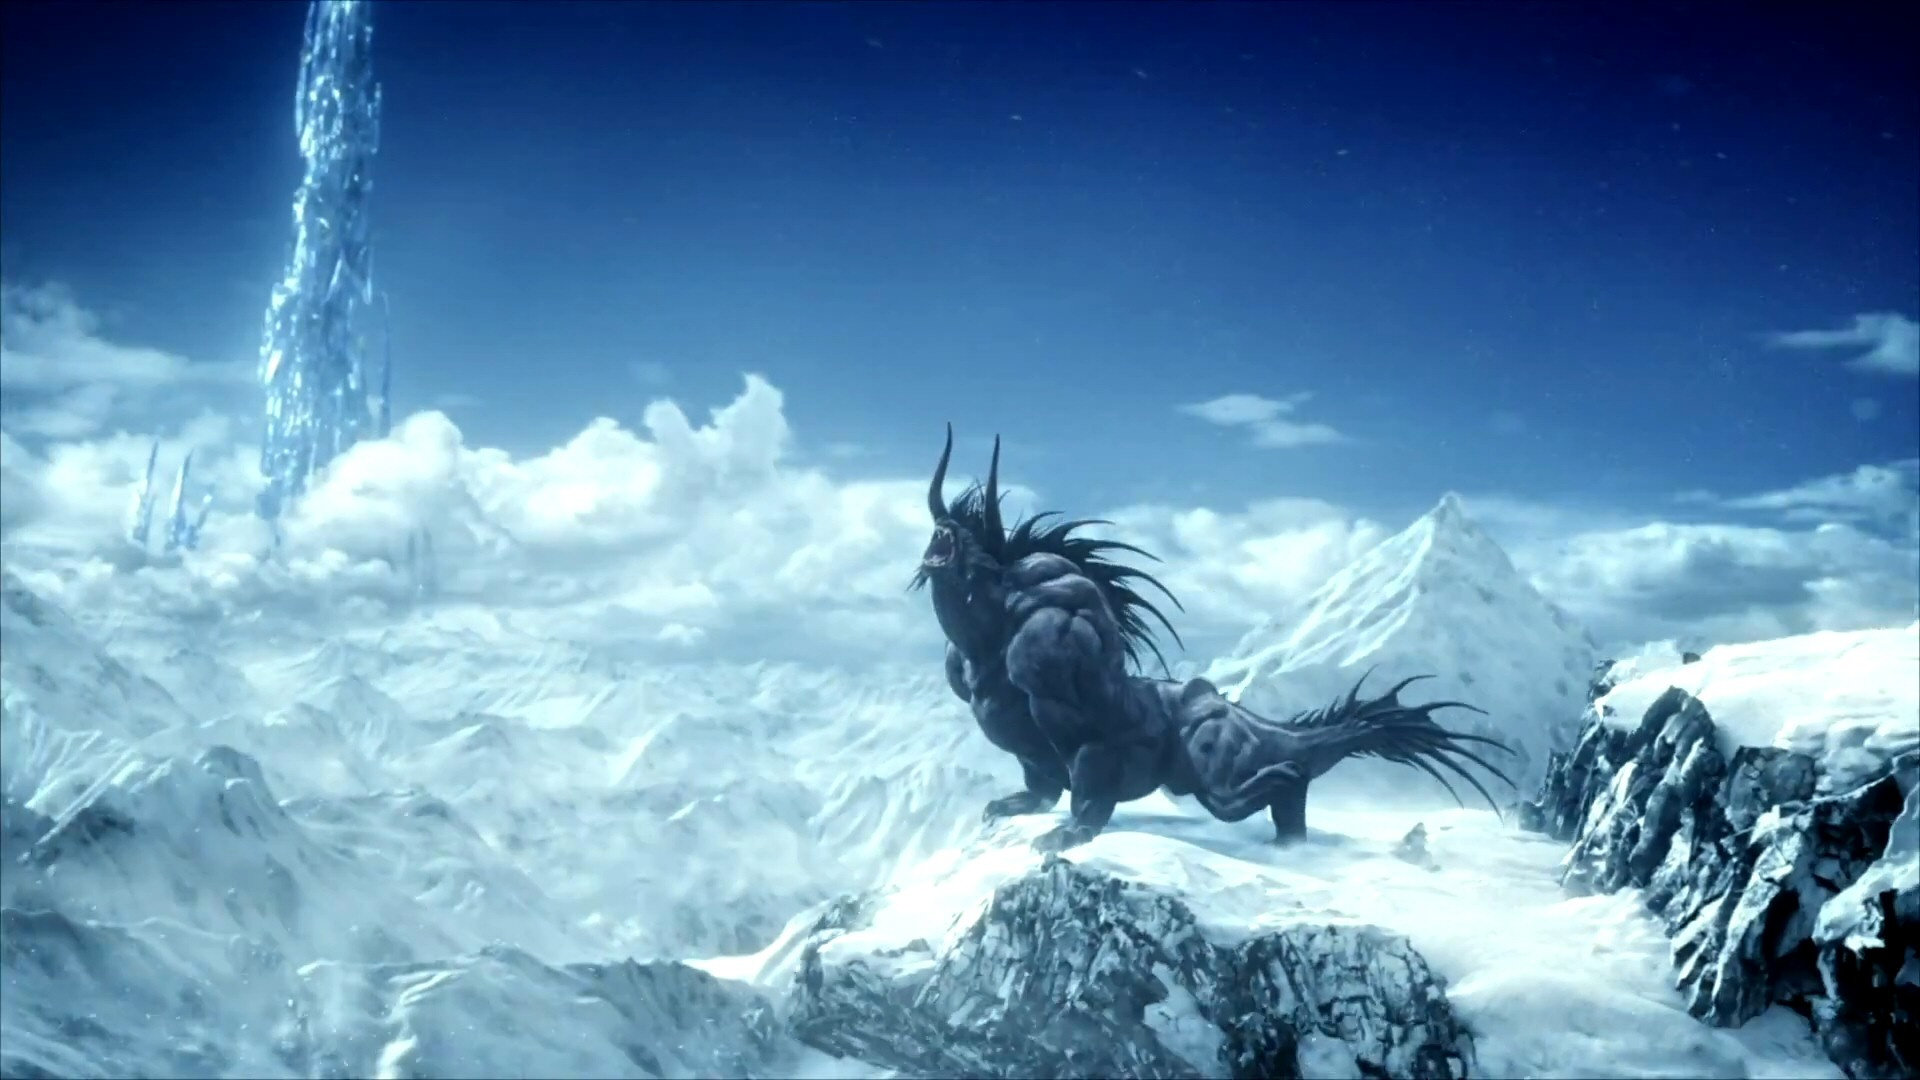 Final Fantasy XIV Heavensward Gets A Release Date Soars Into The Sky This Summer Push Square